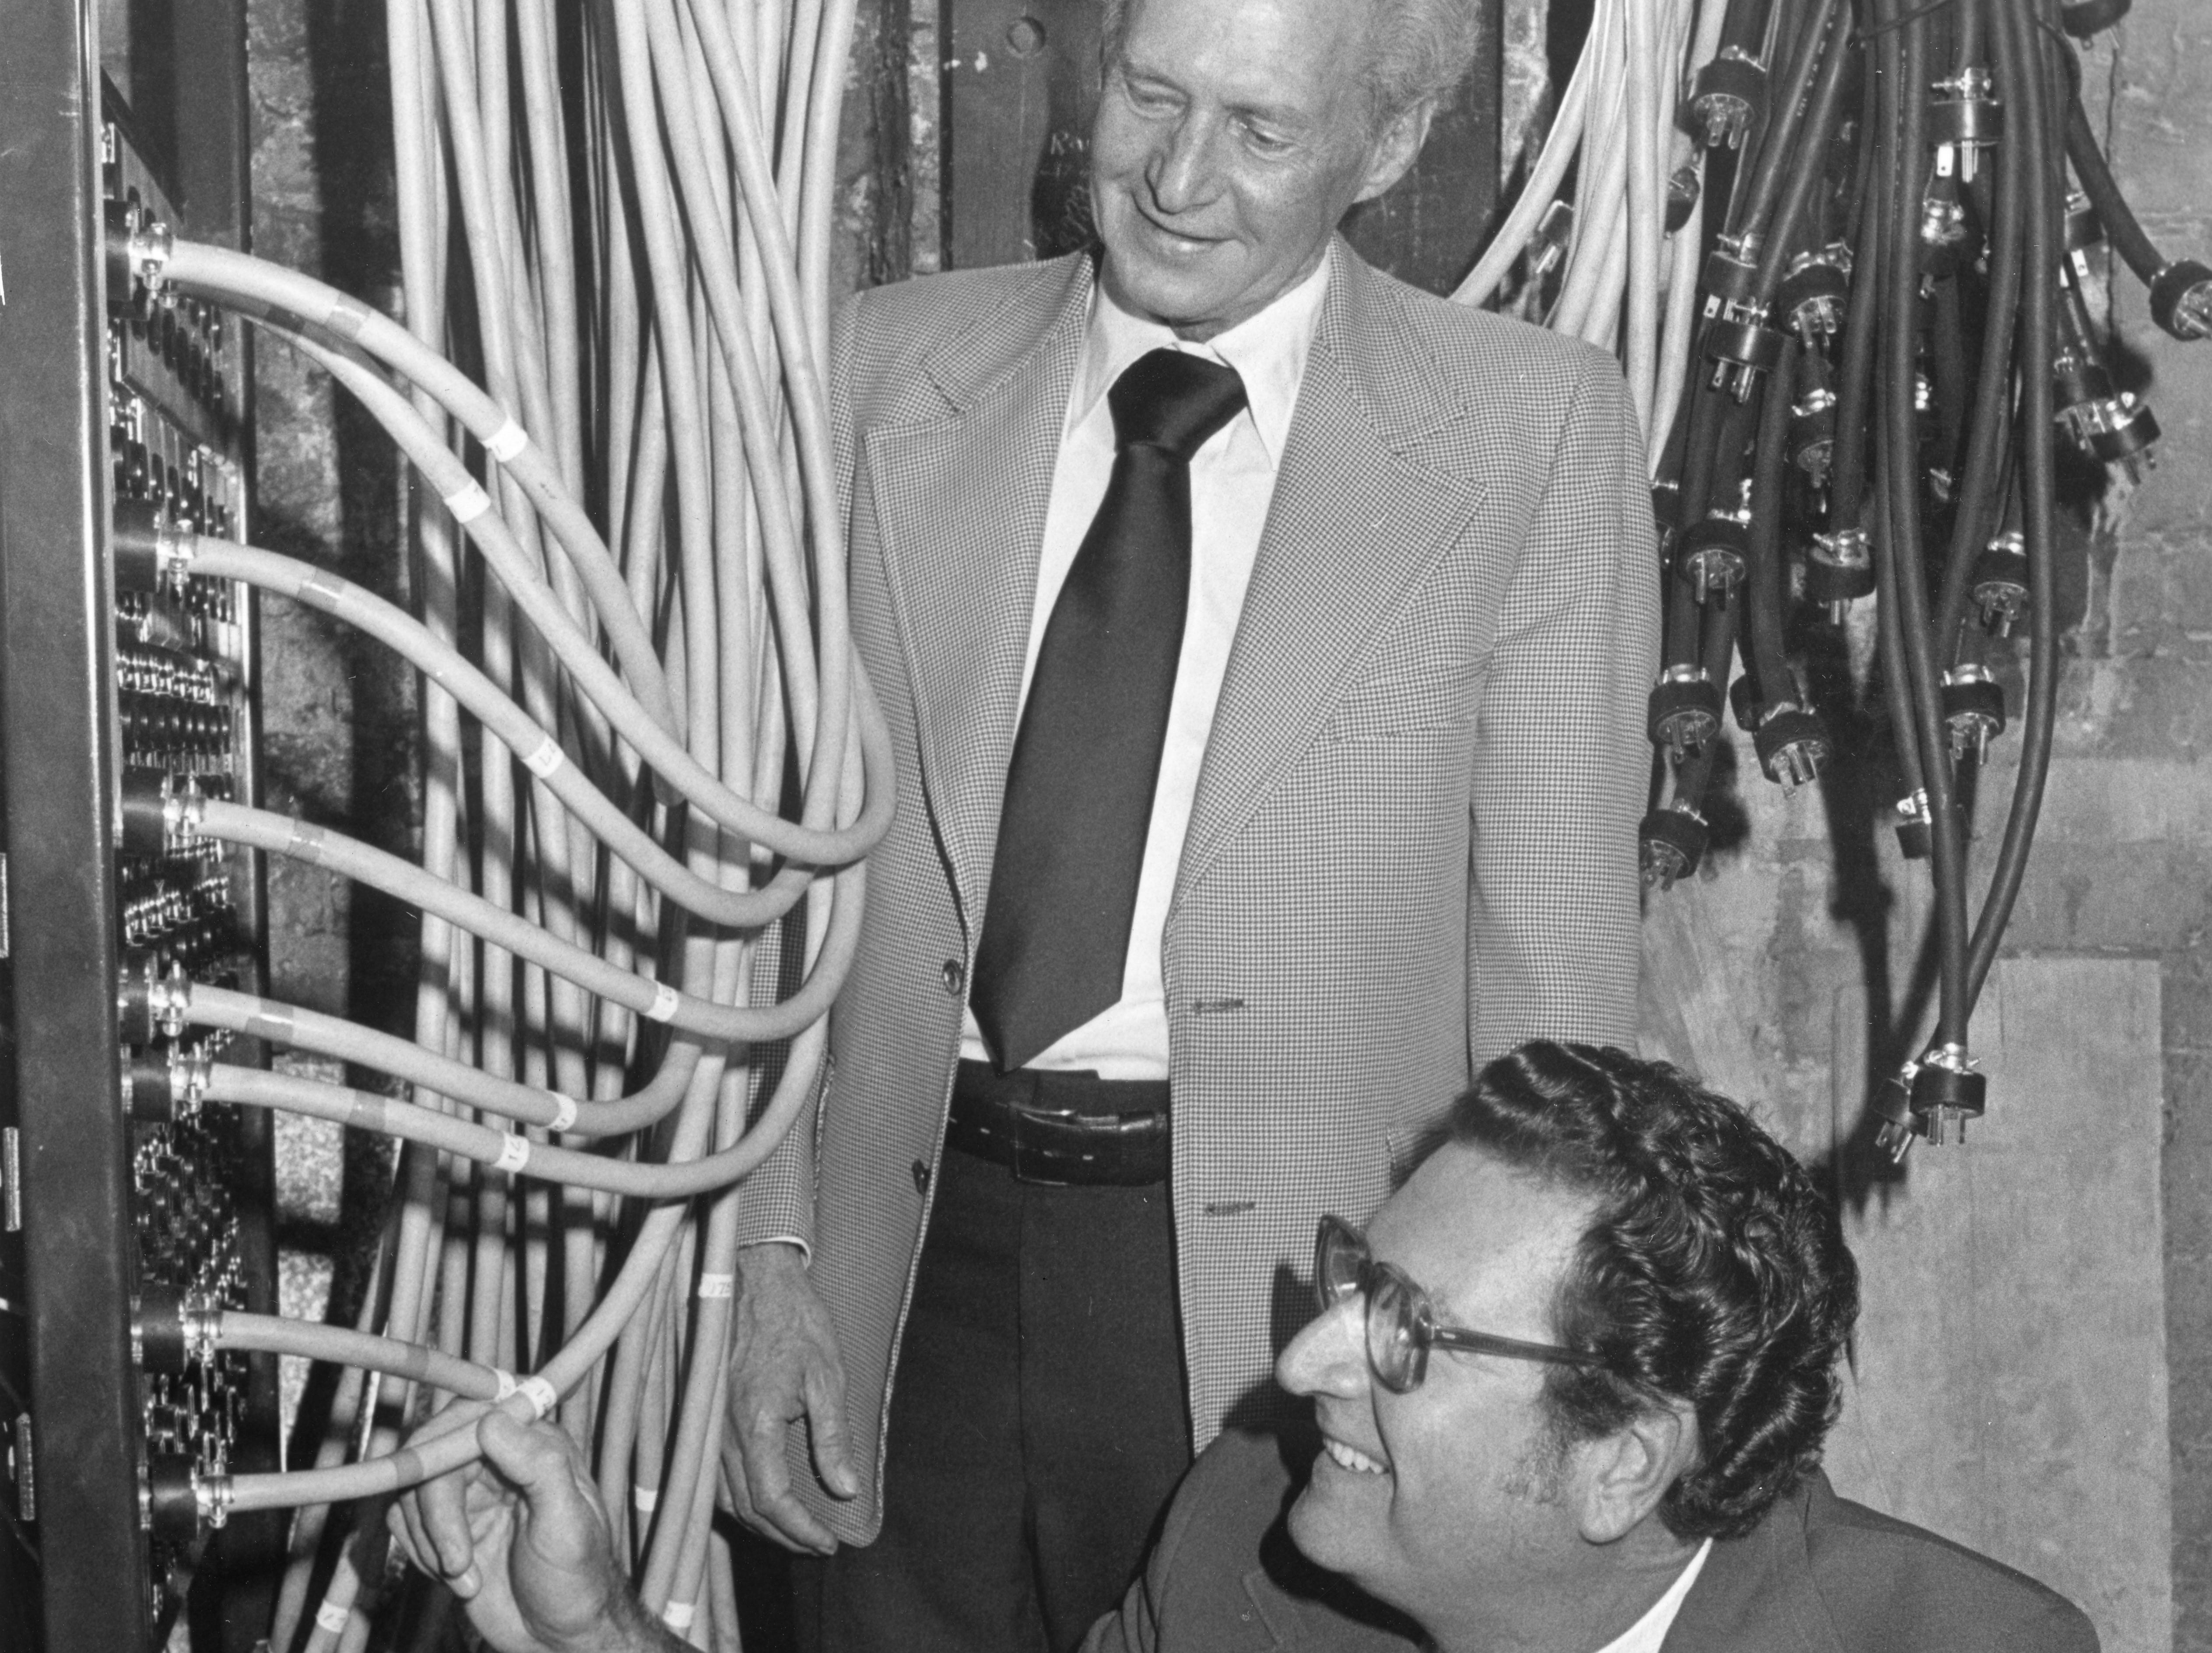 George Beets (standing), president of the Knoxville Building and Construction Trades Council, and Joh Walker, council treasurer, inspect the wiring for the intricate lighting system backstage at the renovated Bijou Theatre ahead of the grand opening on October 27, 1977.